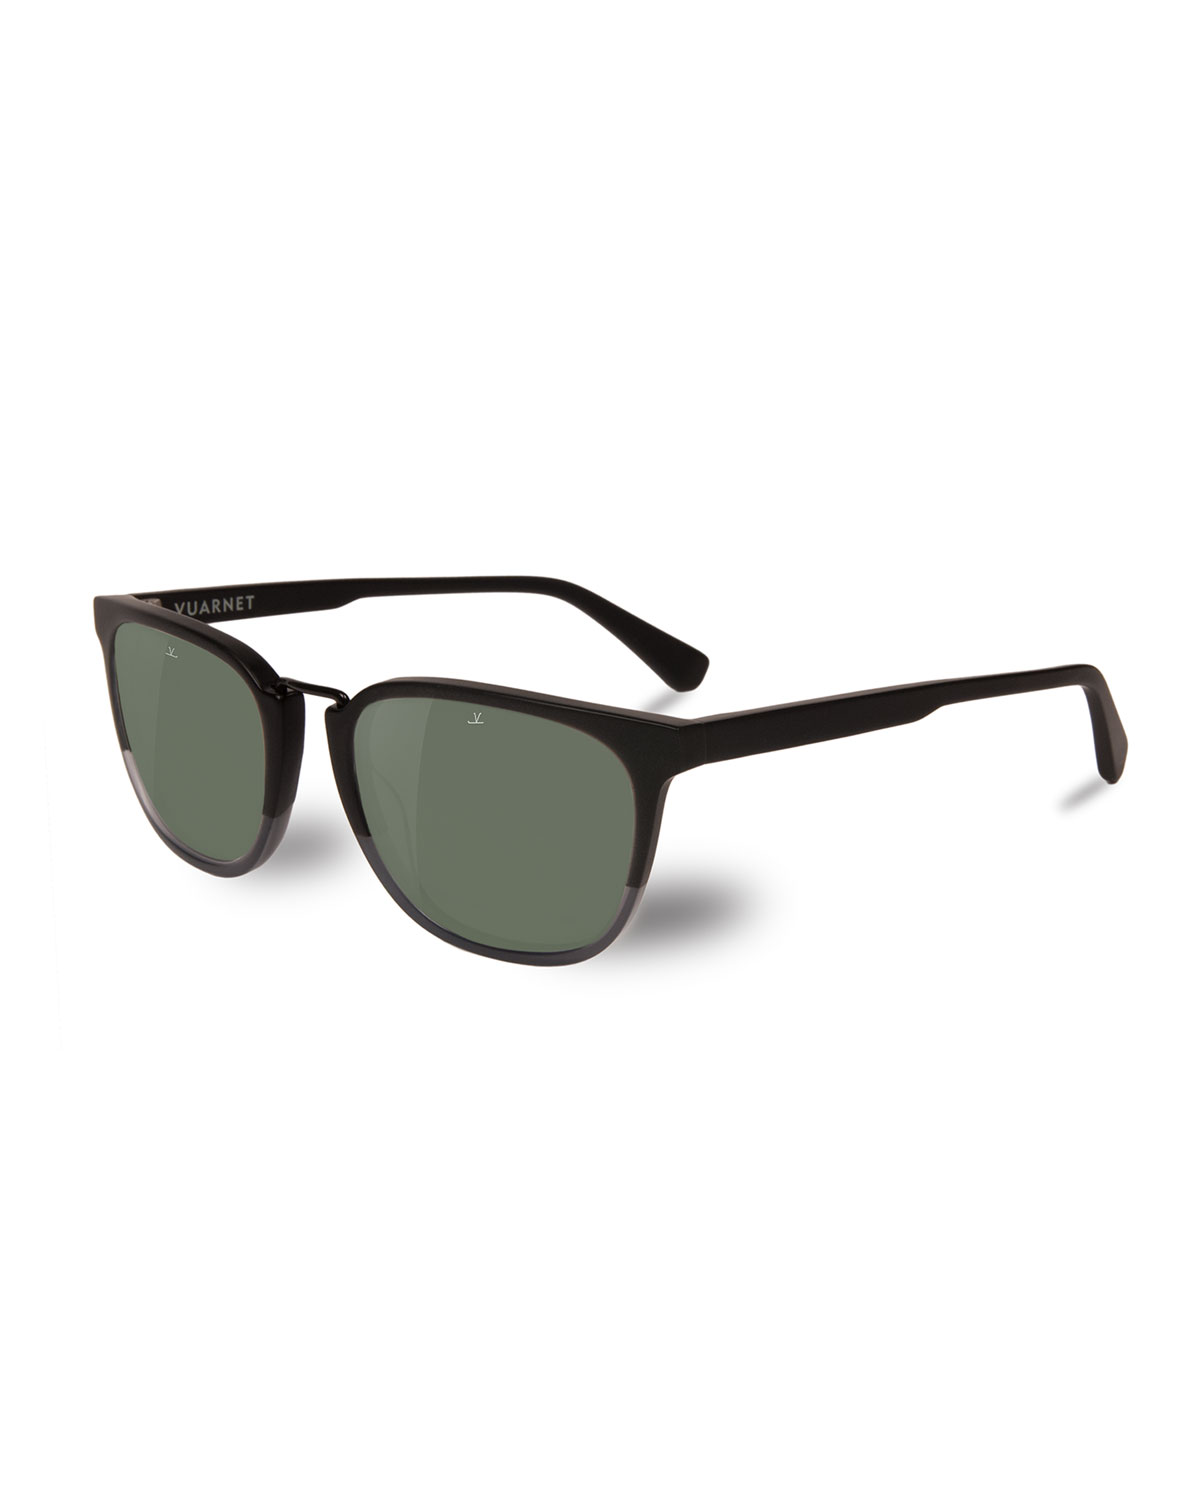 4f836ba3cb0 VUARNET MEN S CABLE CAR SQUARE POLARIZED STAINLESS STEEL ACETATE SUNGLASSES